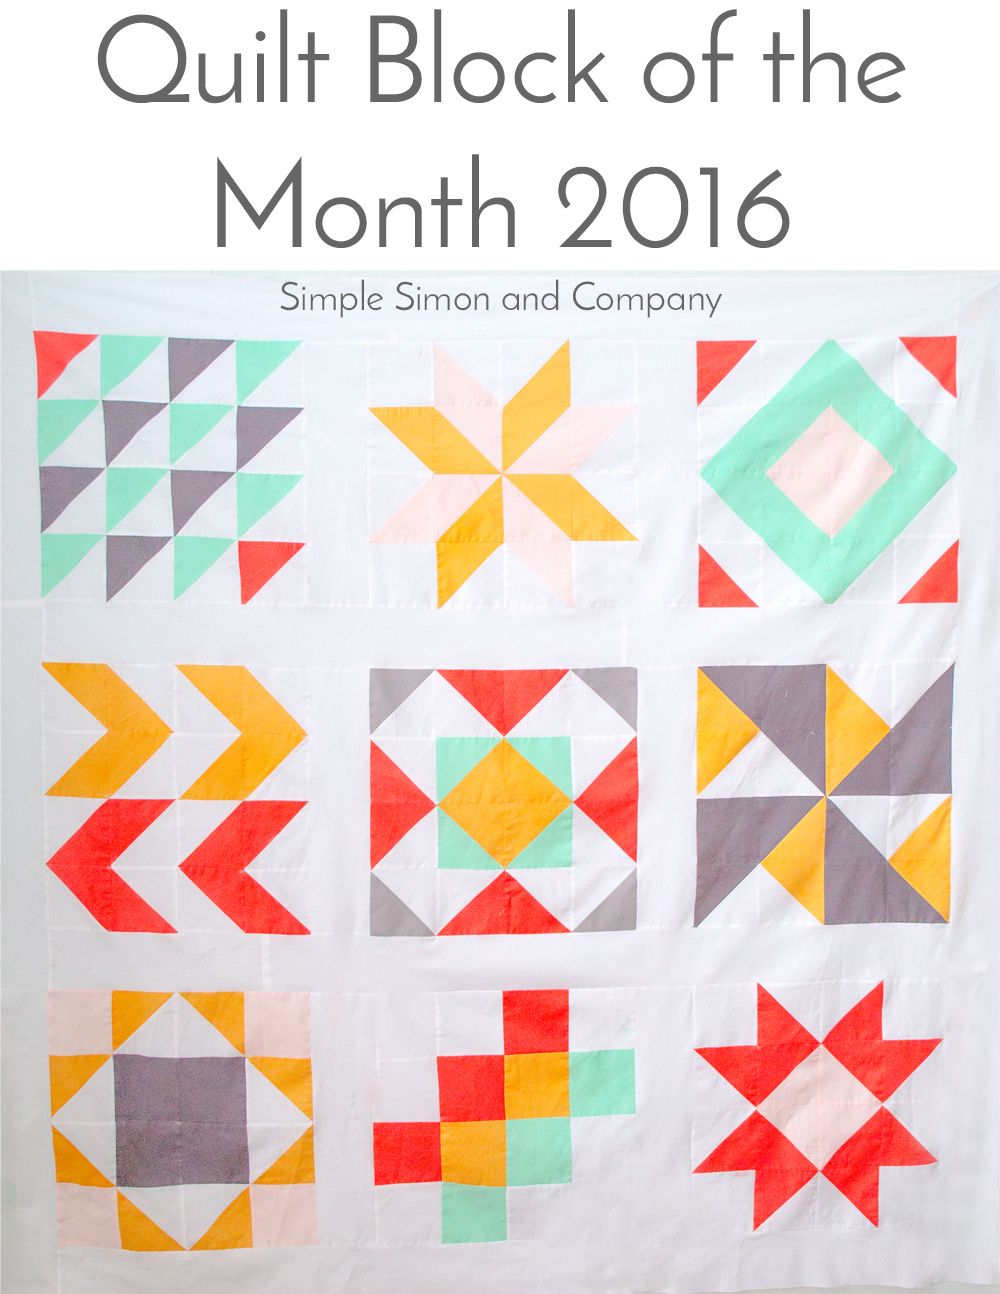 2016 Quilt Block of the Month Yardage Requirements | Quilt top ... : block of the month quilt - Adamdwight.com